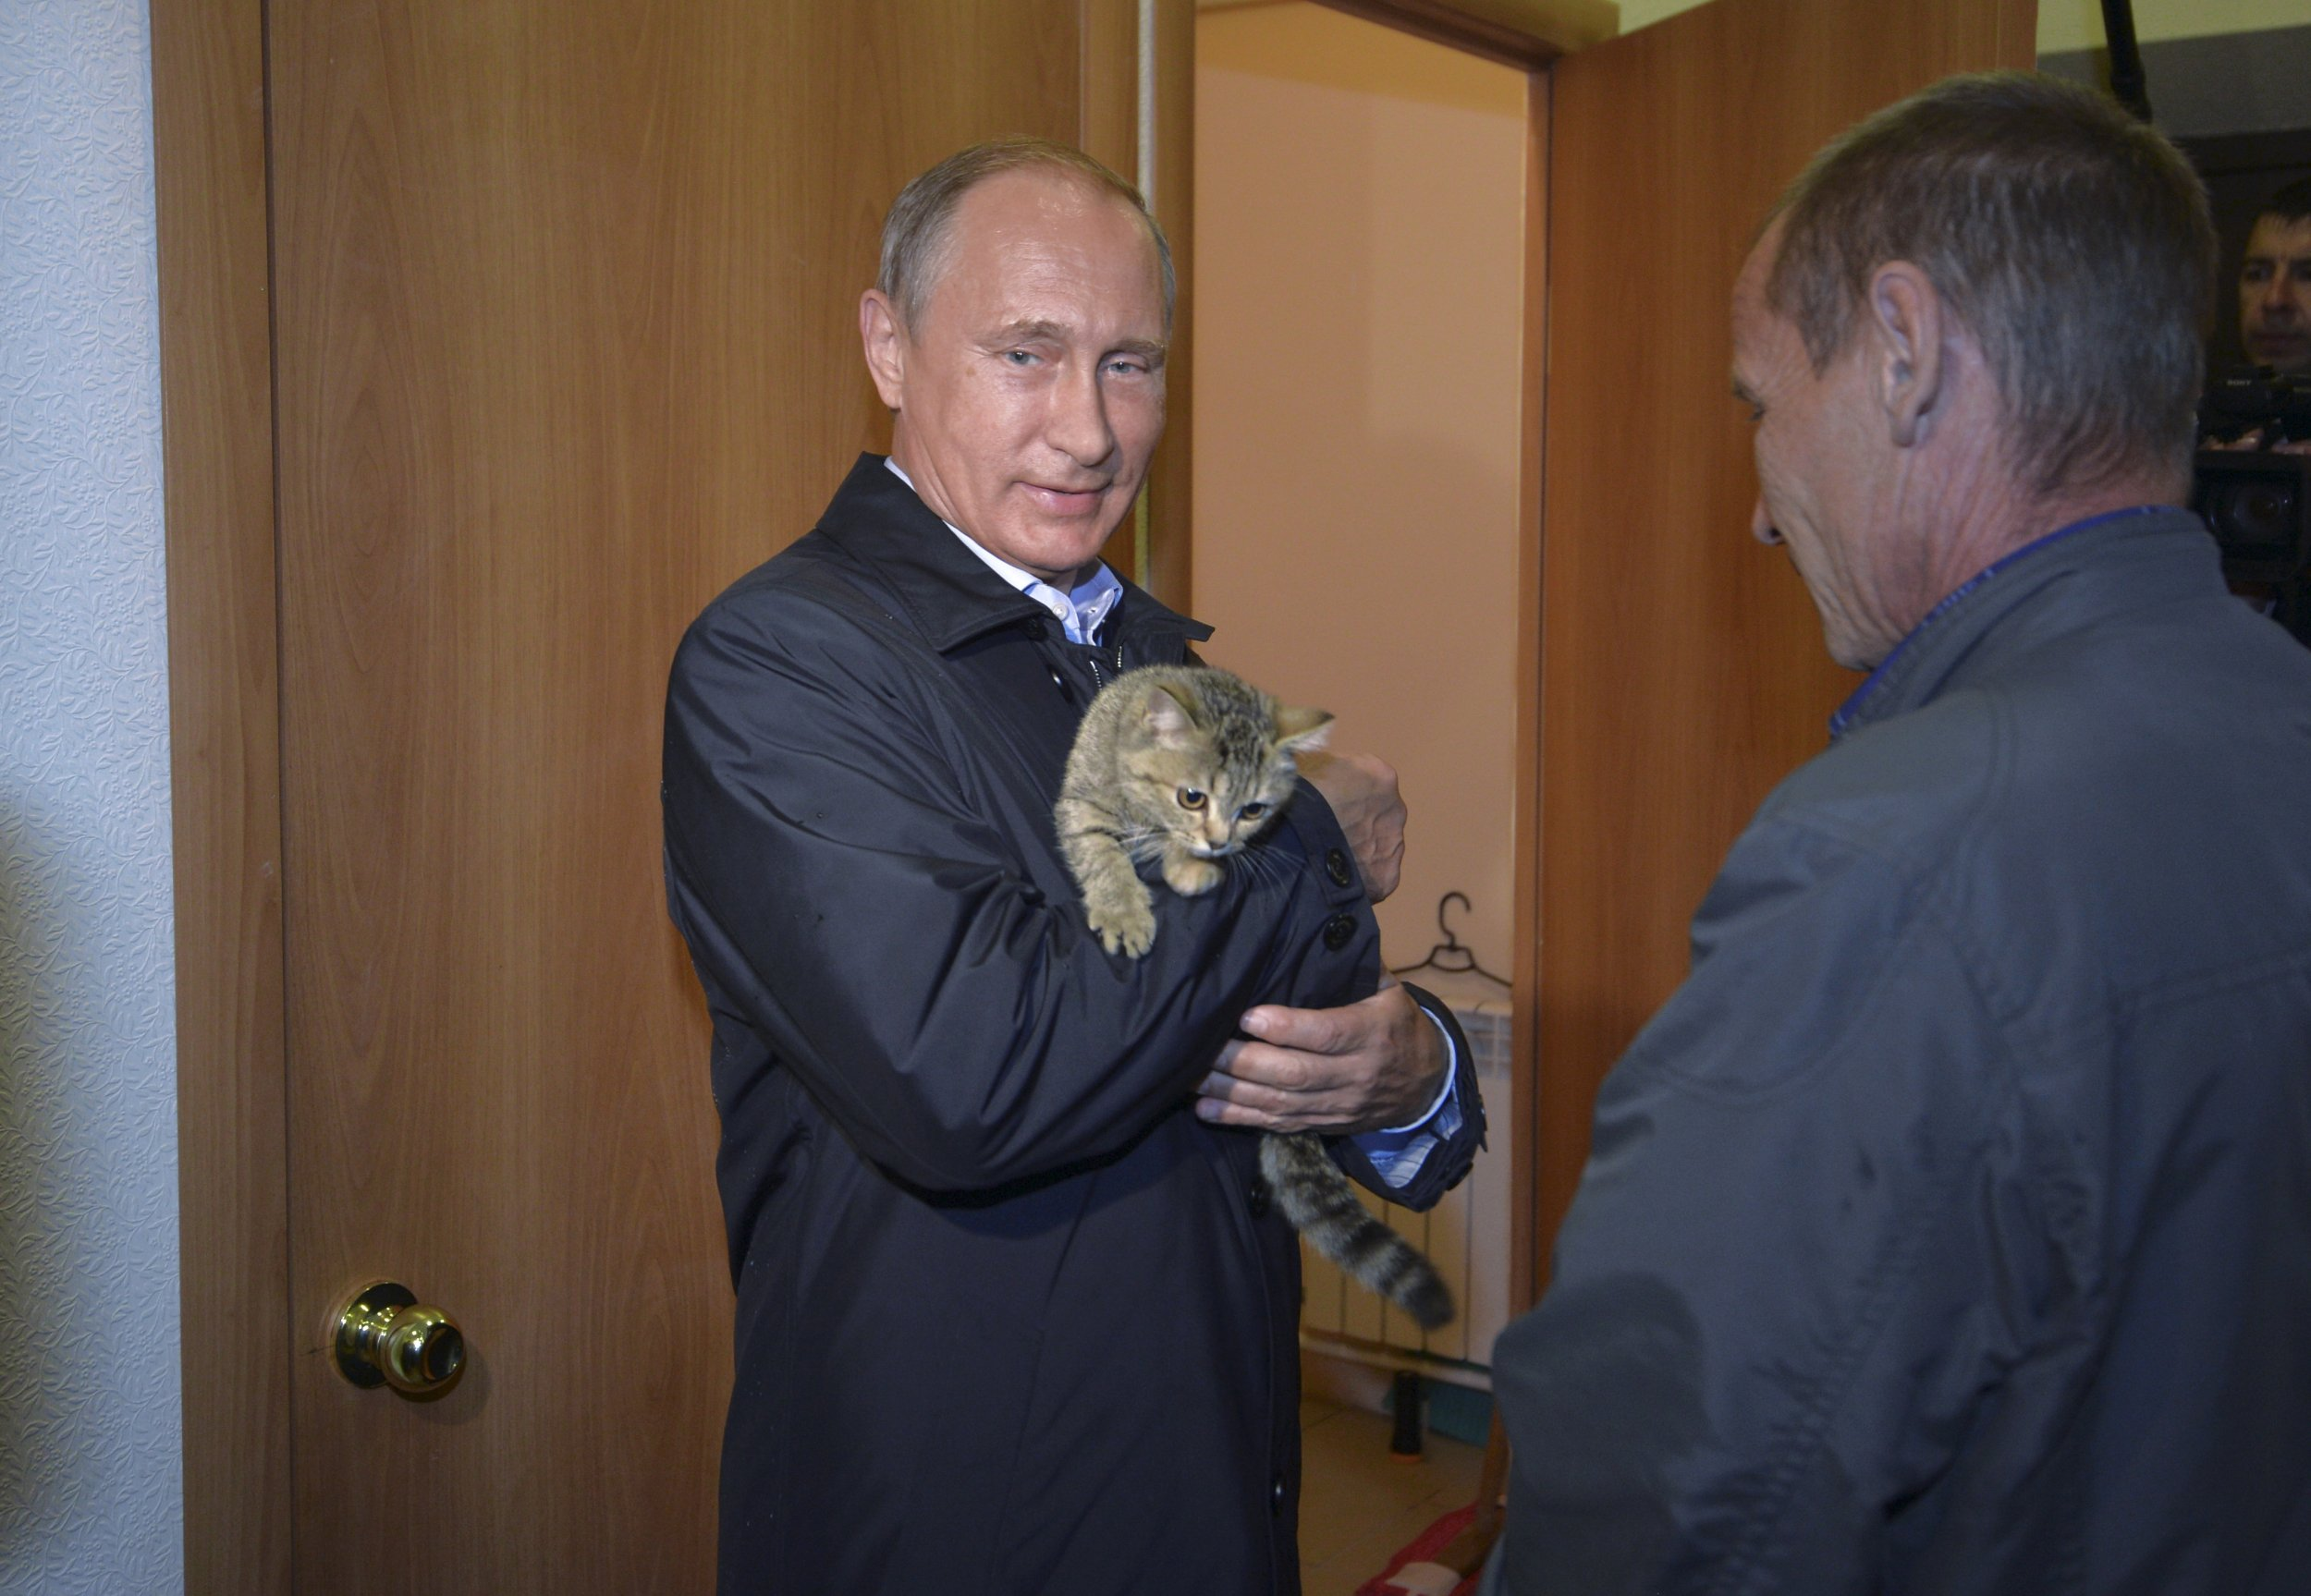 Putin smiles while holding a cat